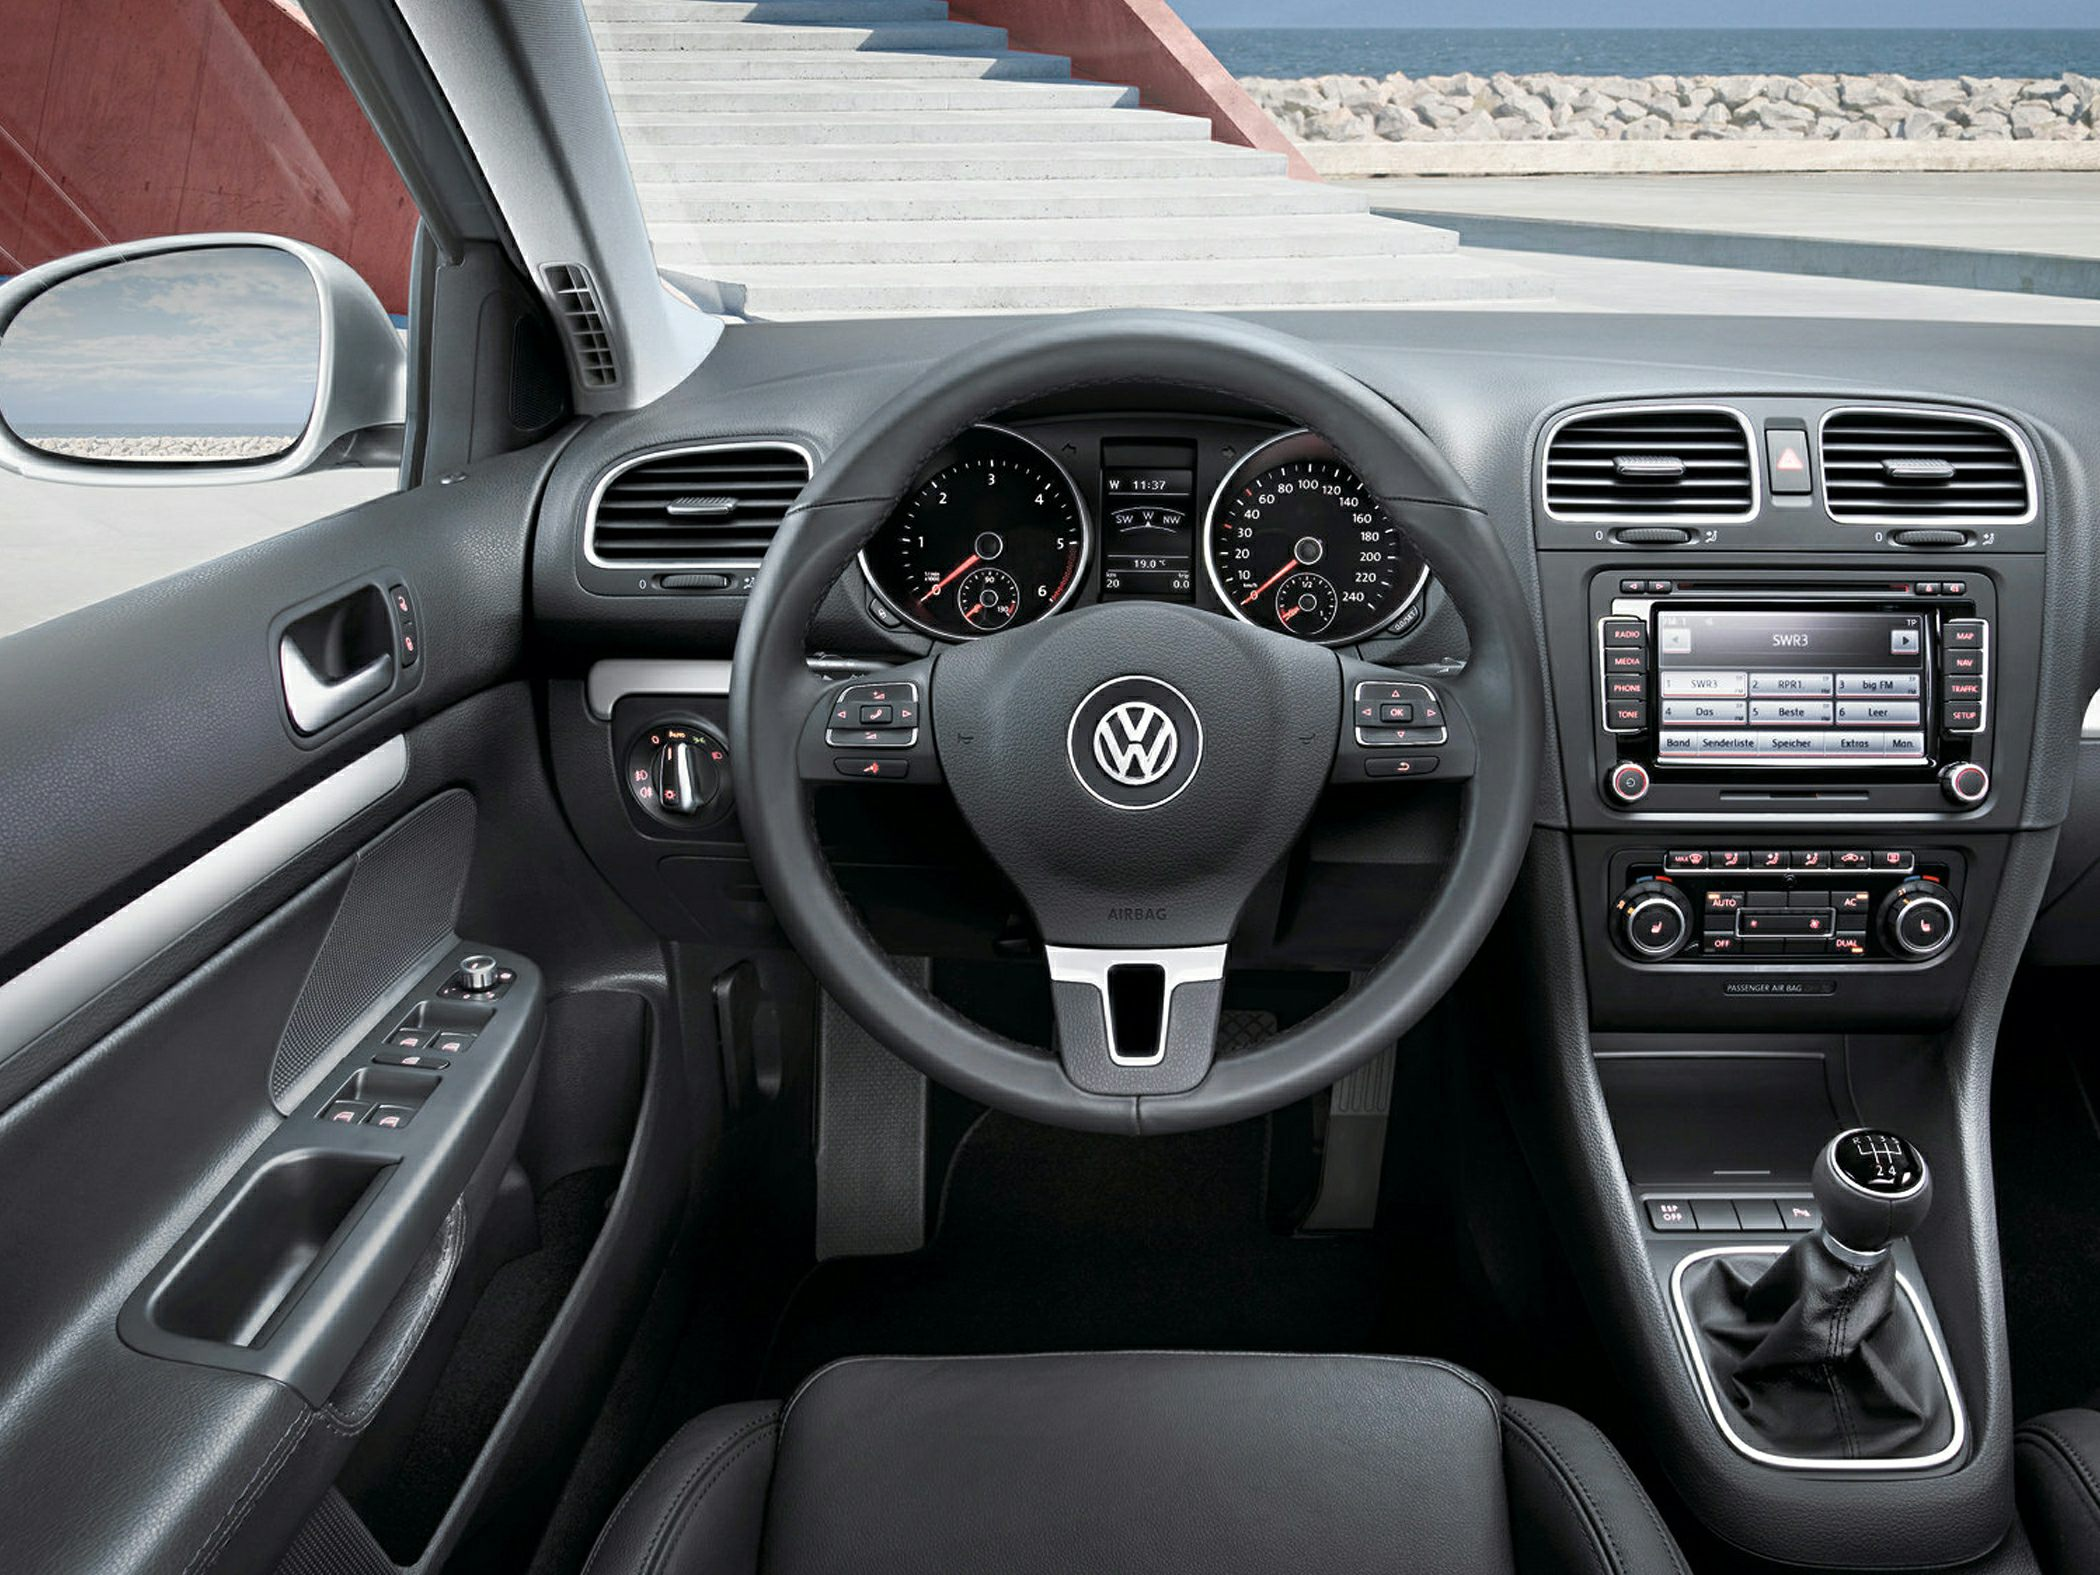 tdi drives new home reports initial jetta dsg vw a bhp team test ownership finds forum volkswagen